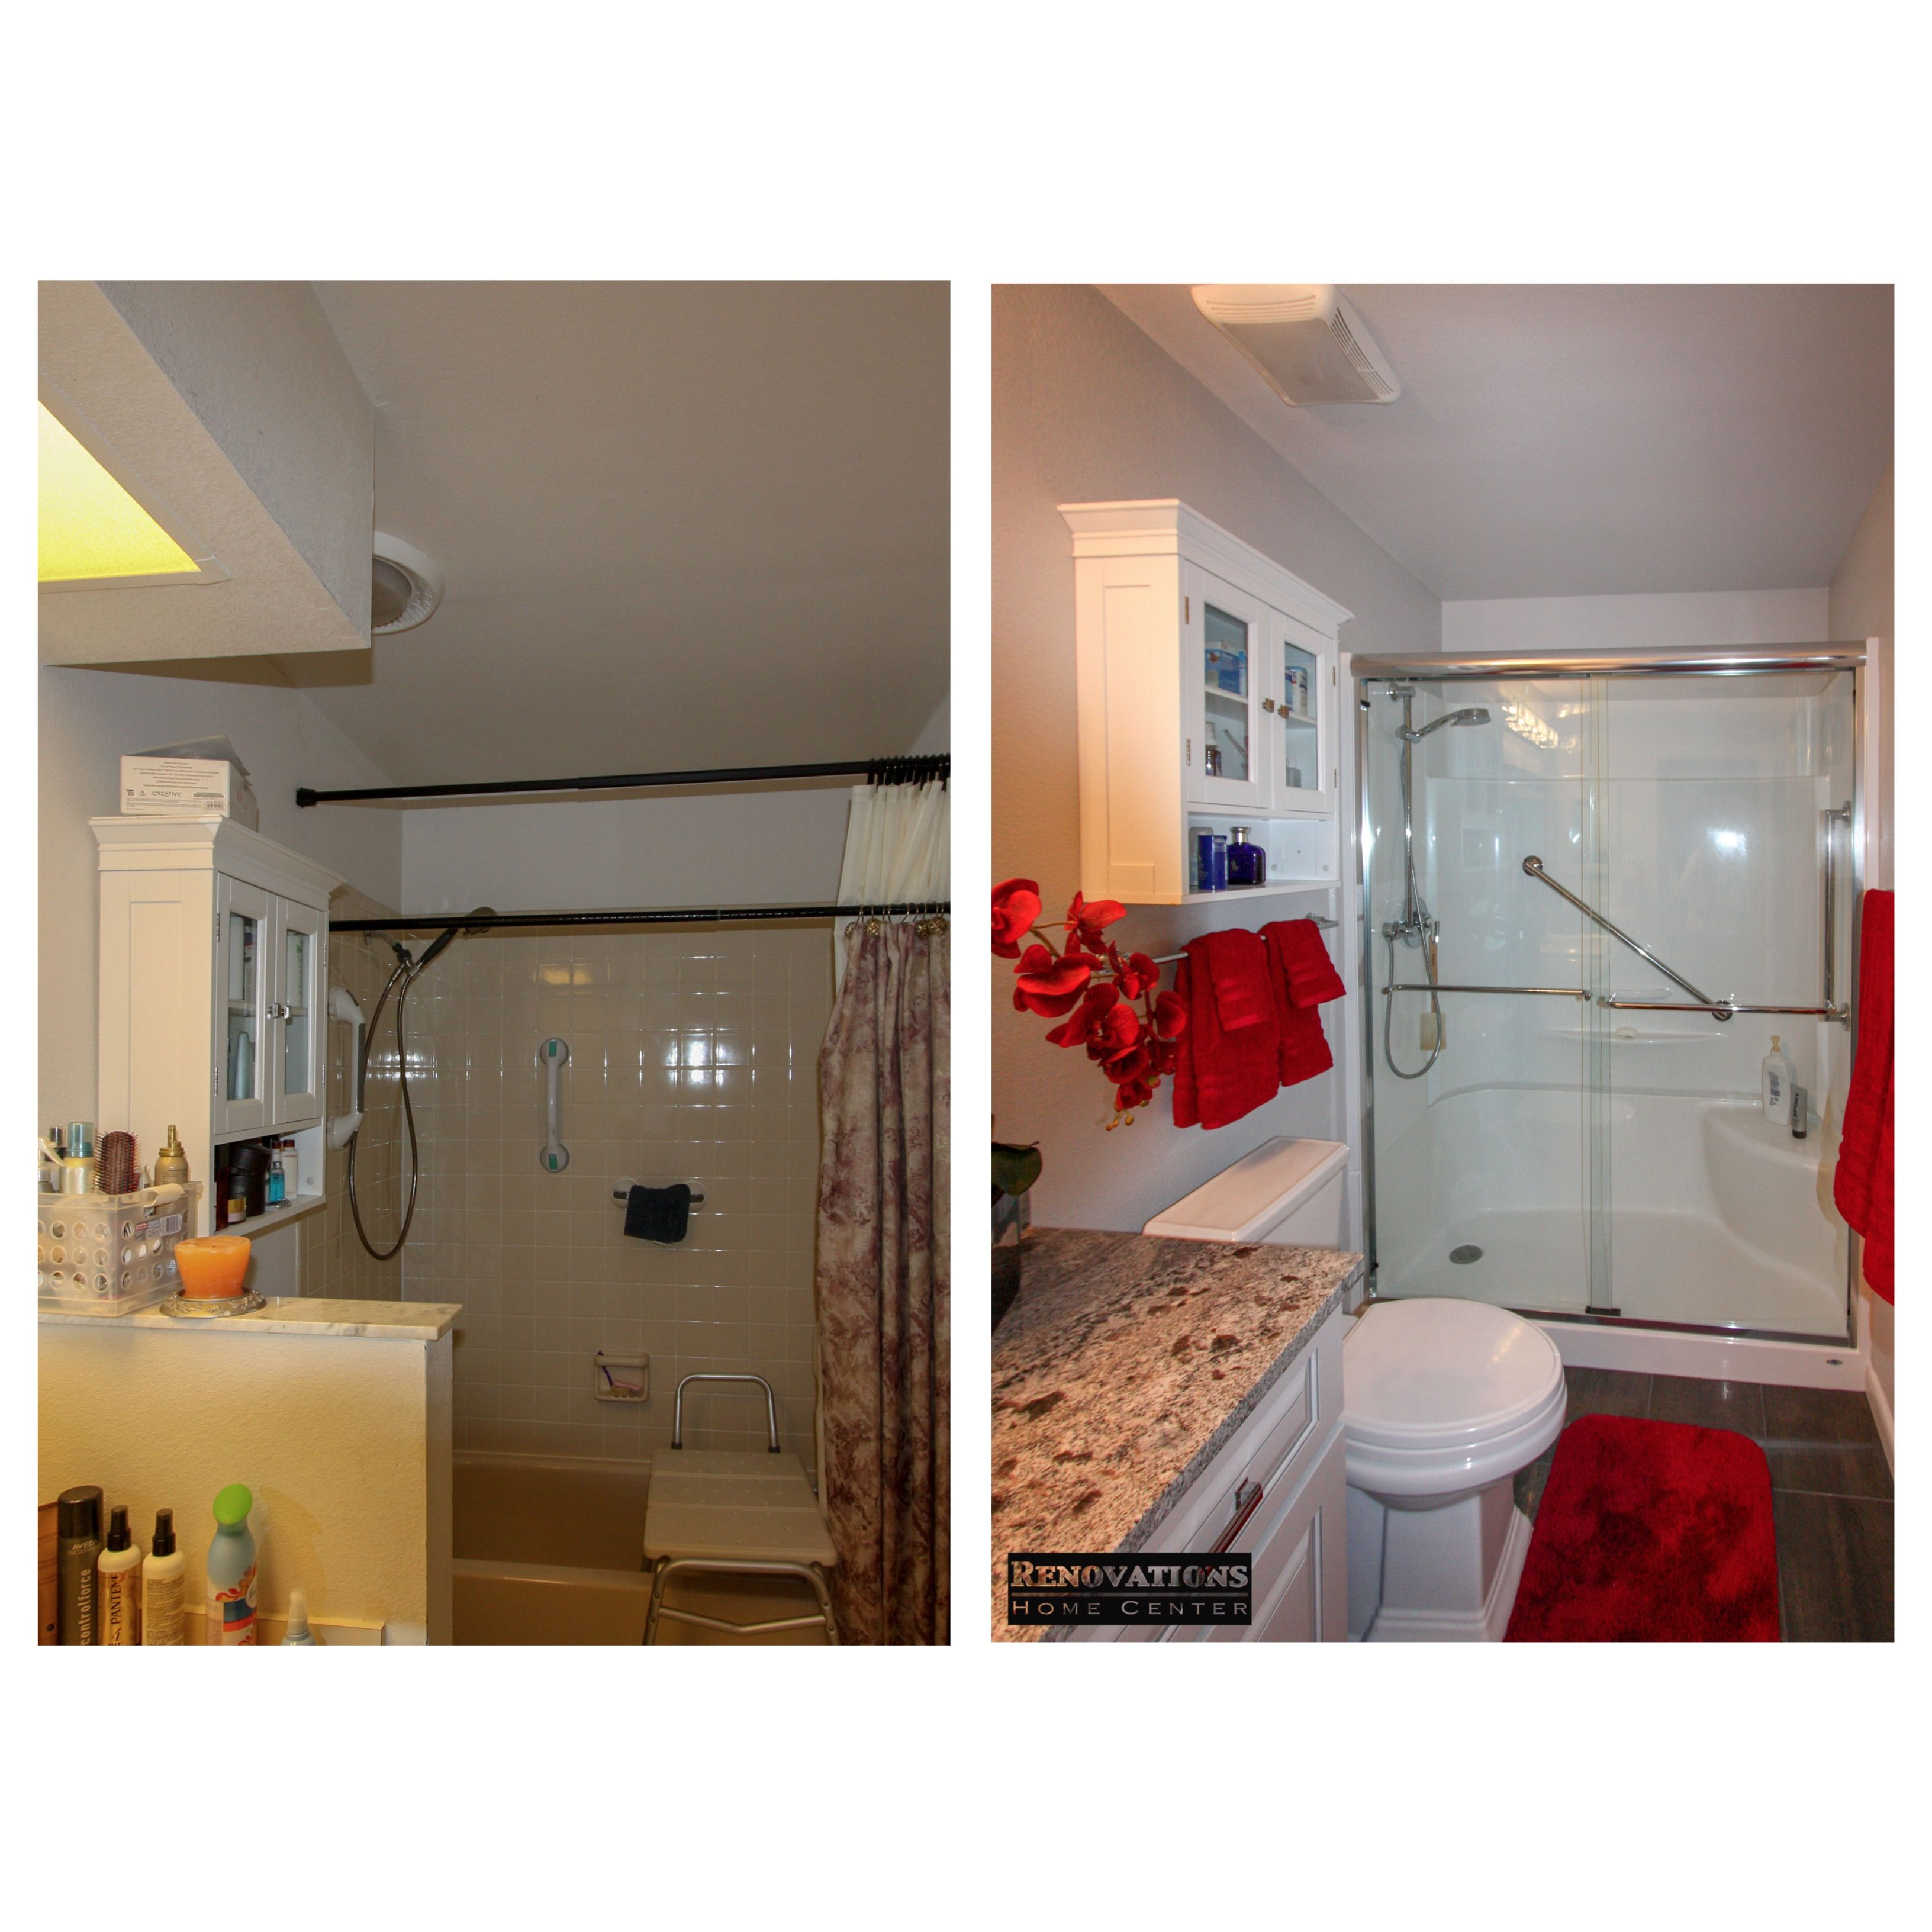 Kitchen And Bathroom Remodeling Contractors: Full Bathroom Renovation For Our Client In Palm Harbor. We